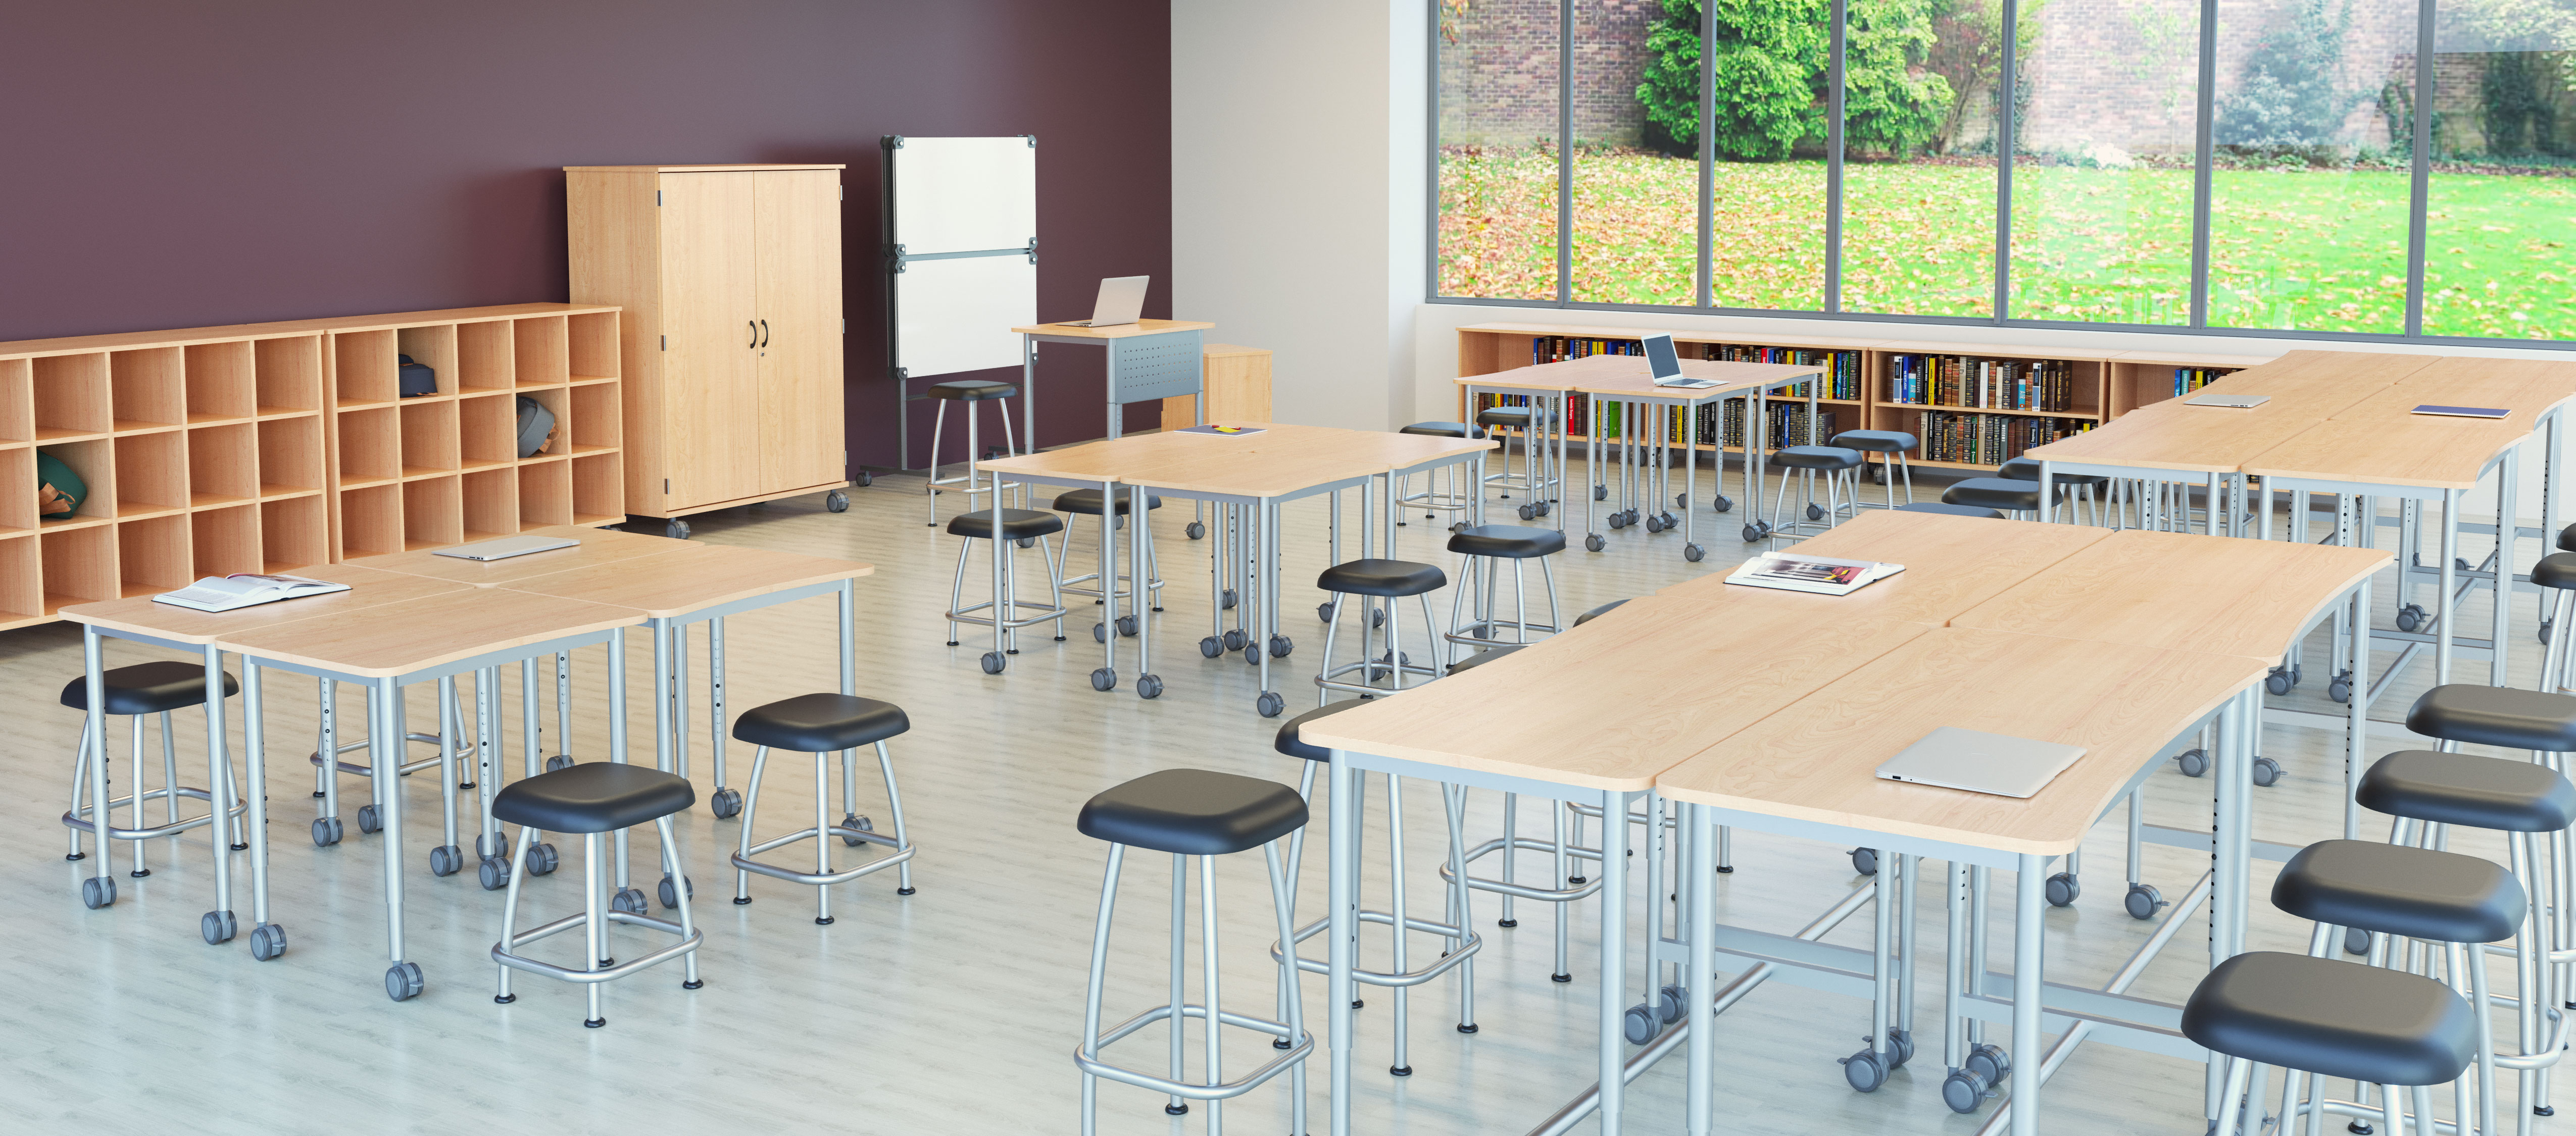 Rendering of the encore collection in the classroom